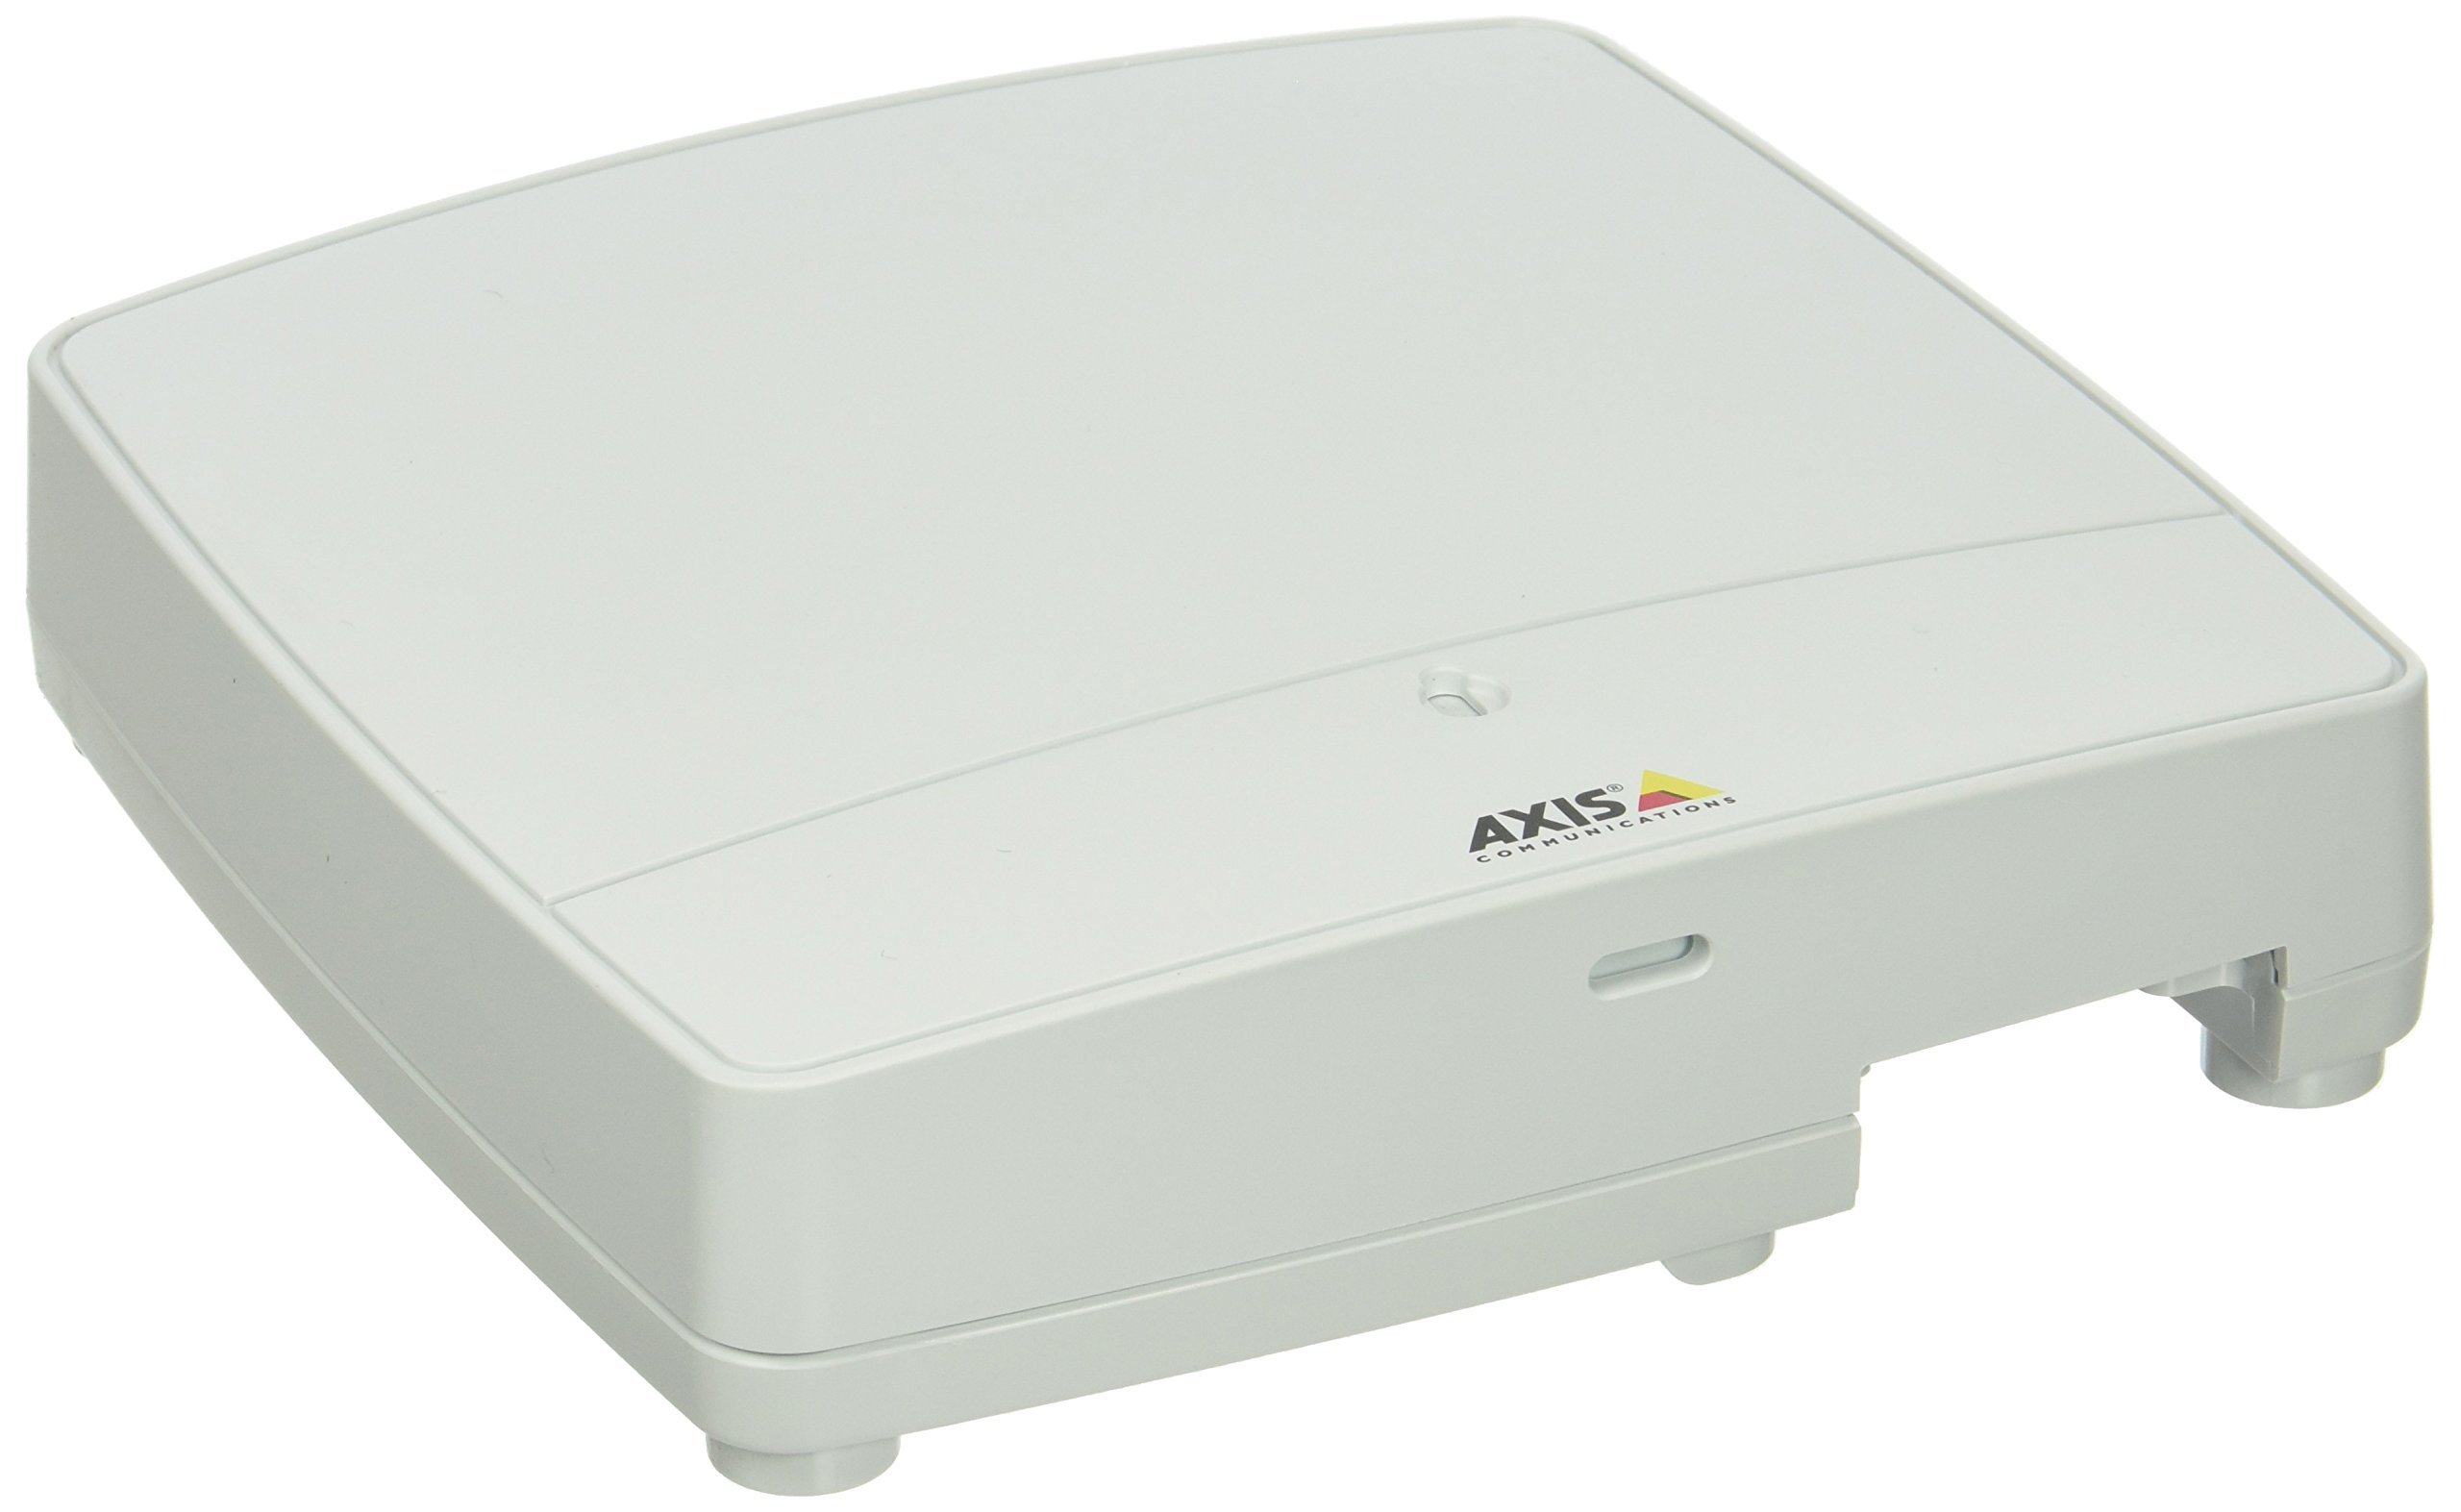 Axis Communications 0540-001 Network Door Controller for Security Systems